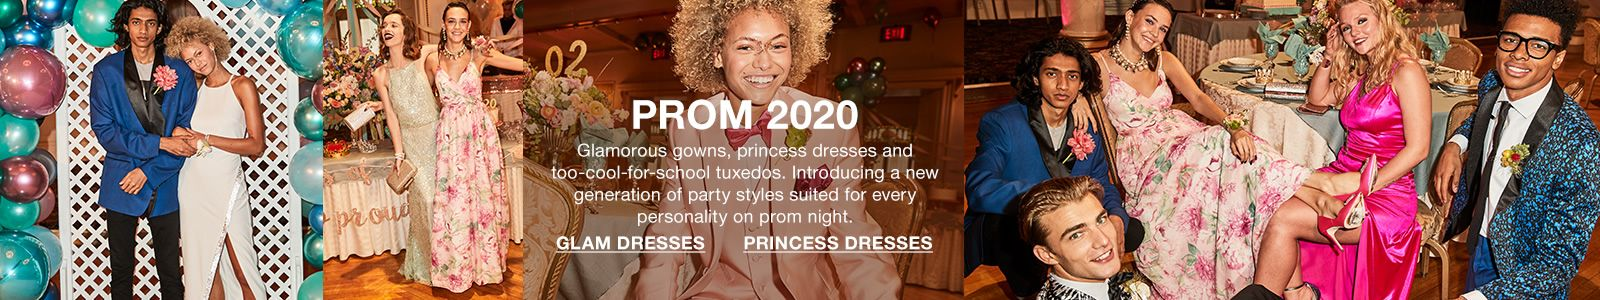 PROM 2020 Glamorous growns, princess dresses and too-cool- for -school tuxedos, Introducing a new generation of party styles suited for every personality on porm night, Glam Dresses, Princess Dresses